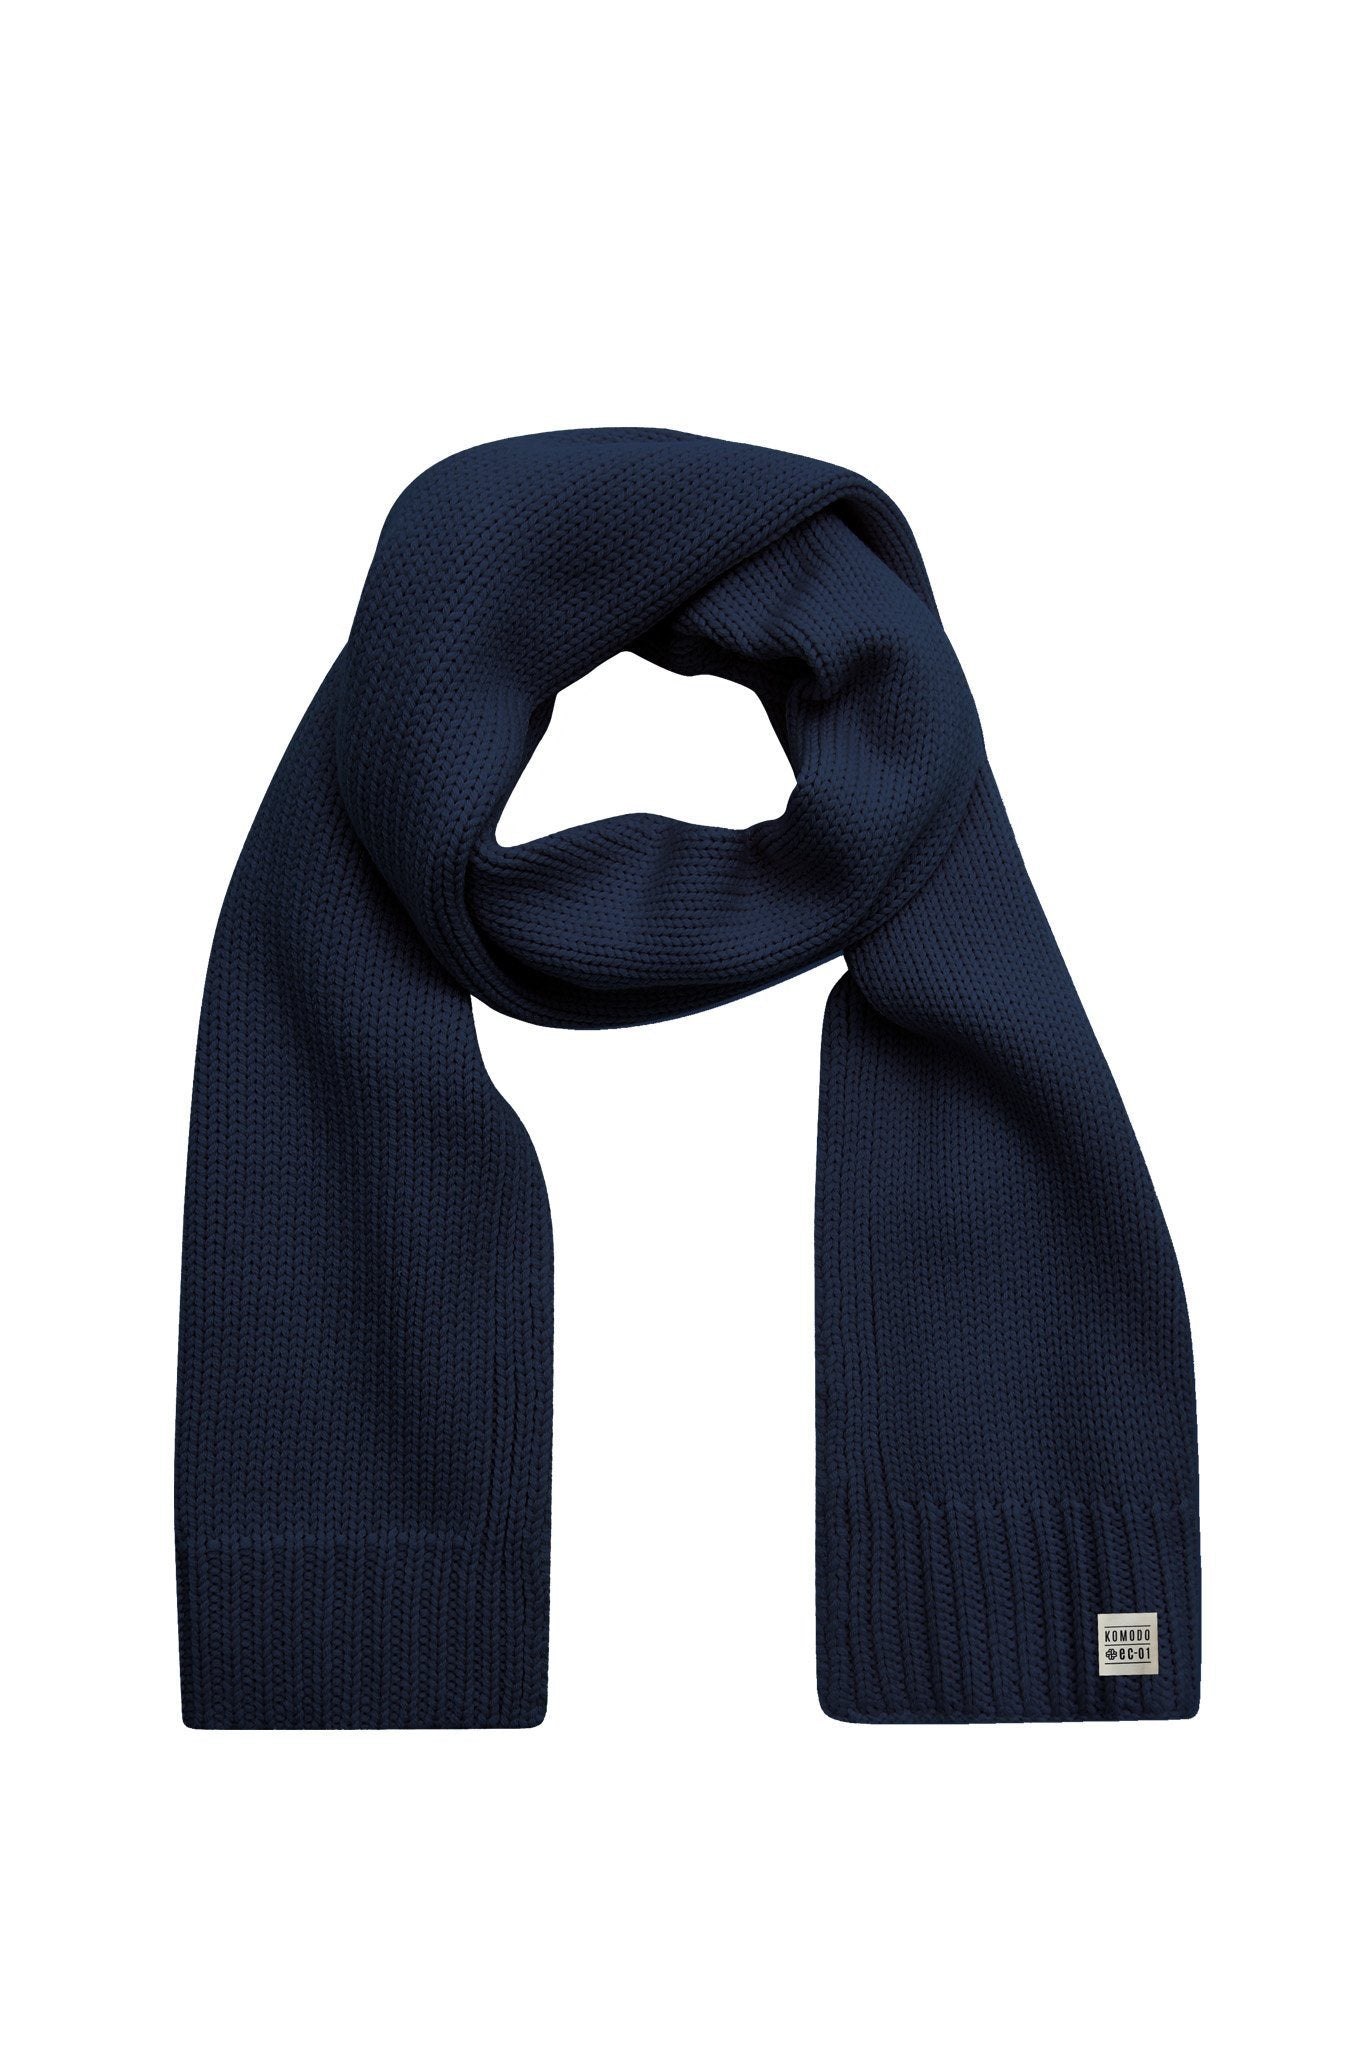 Accessories - RIM Merino Wool Scarf Navy